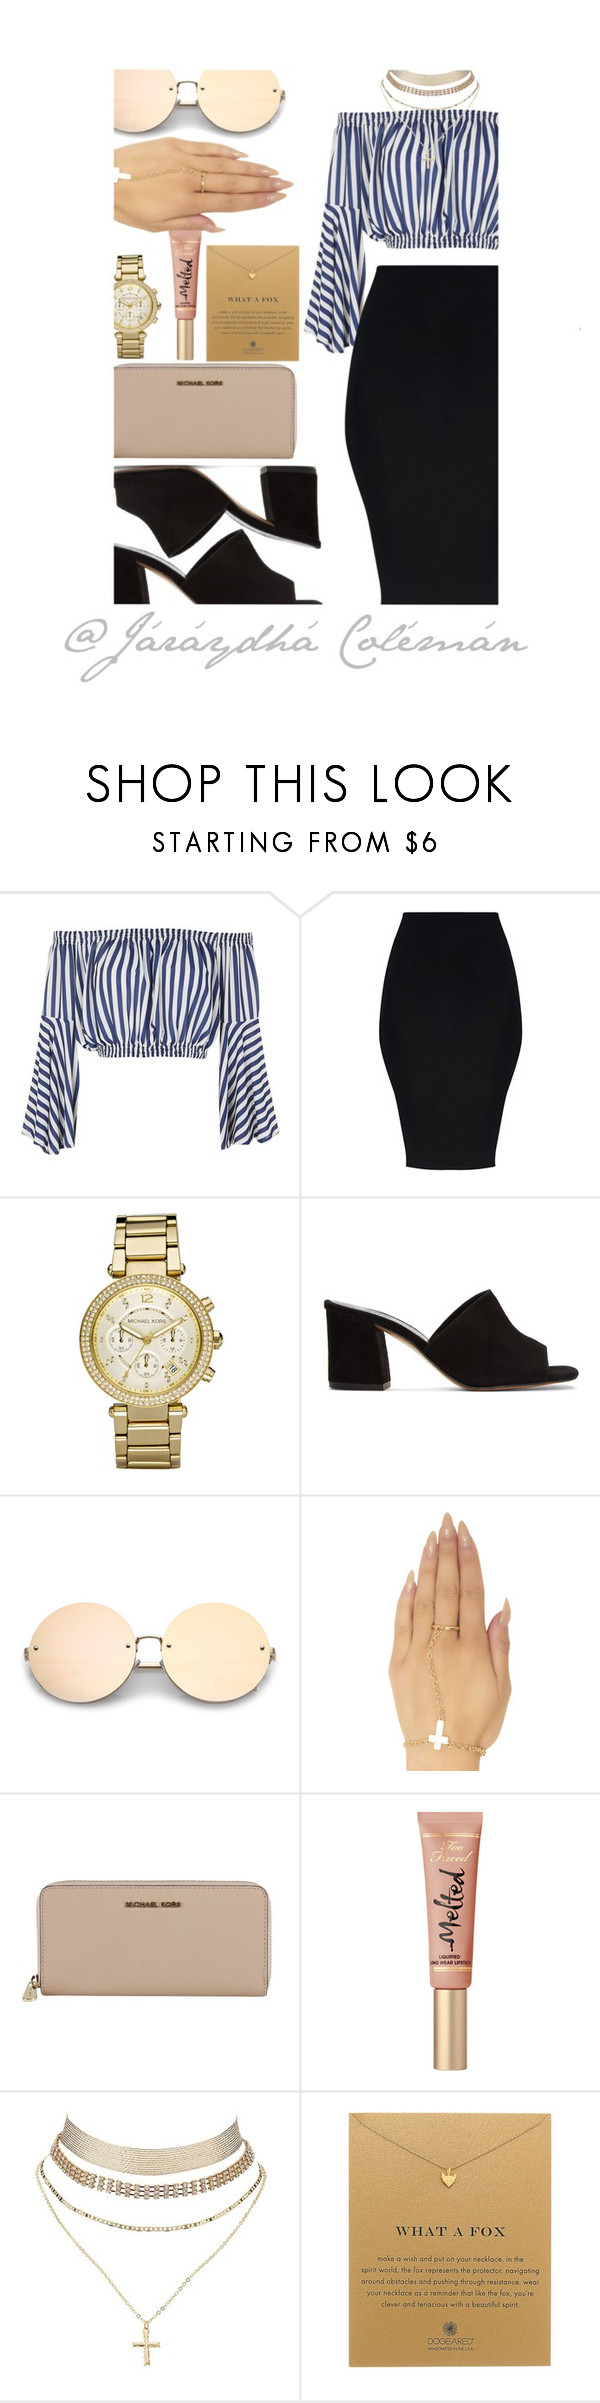 """""""(MON)day (MON)ey"""" by jaraydha99 ❤ liked on Polyvore featuring Love, Michael Kors, Maryam Nassir Zadeh, Wet Seal, MICHAEL Michael Kors, Charlotte Russe and Dogeared"""